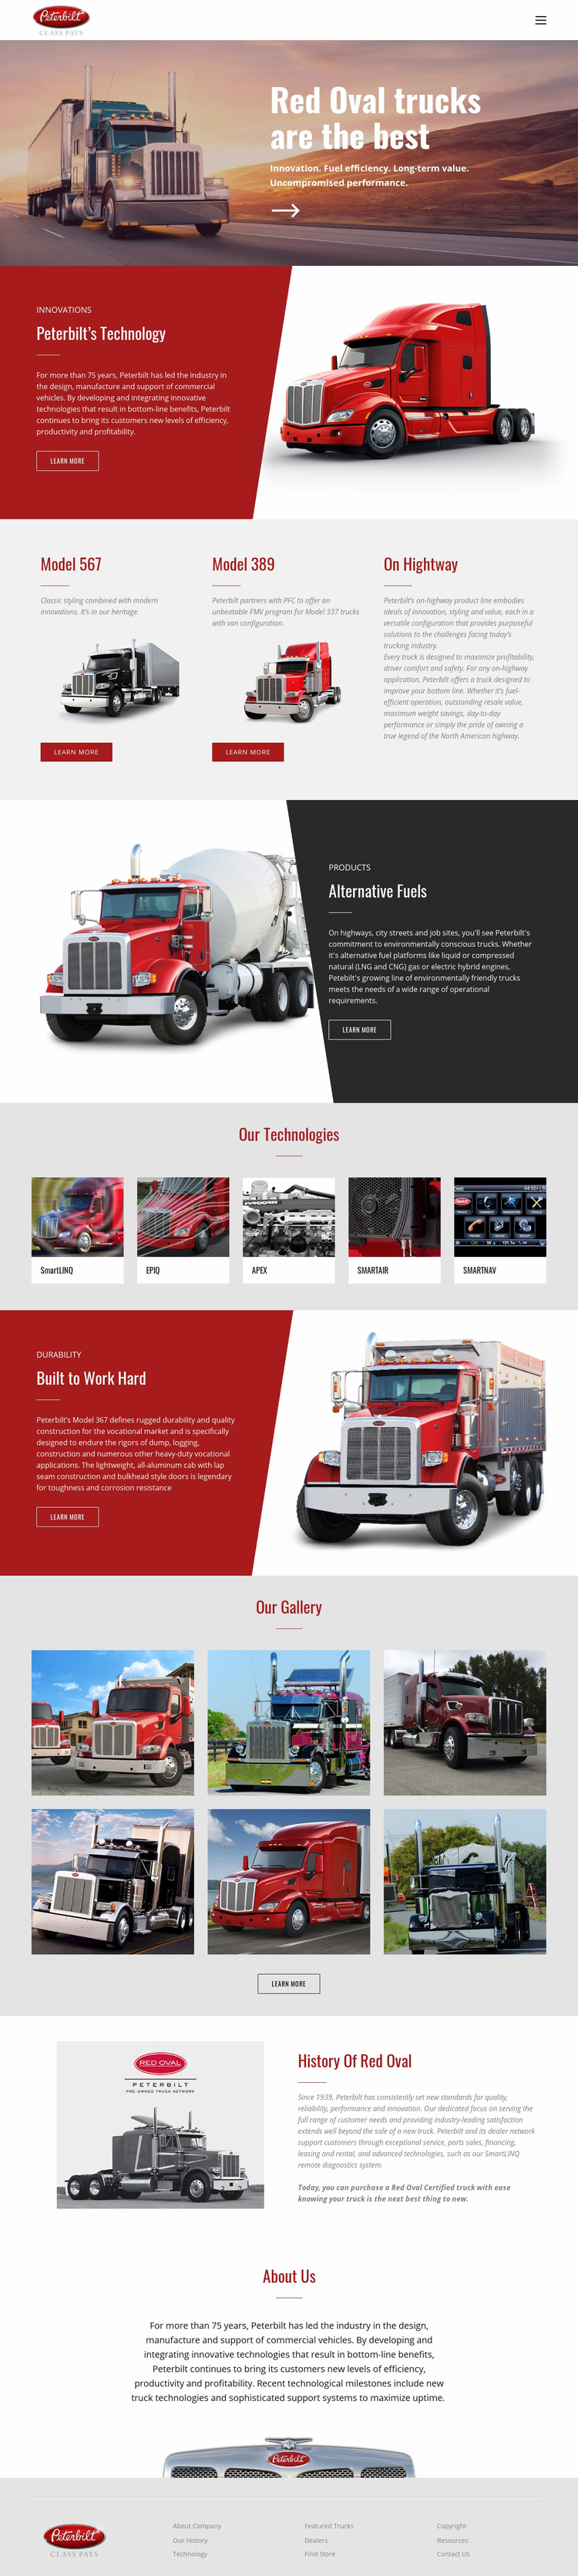 Red oval truck transportaion Web Page Design